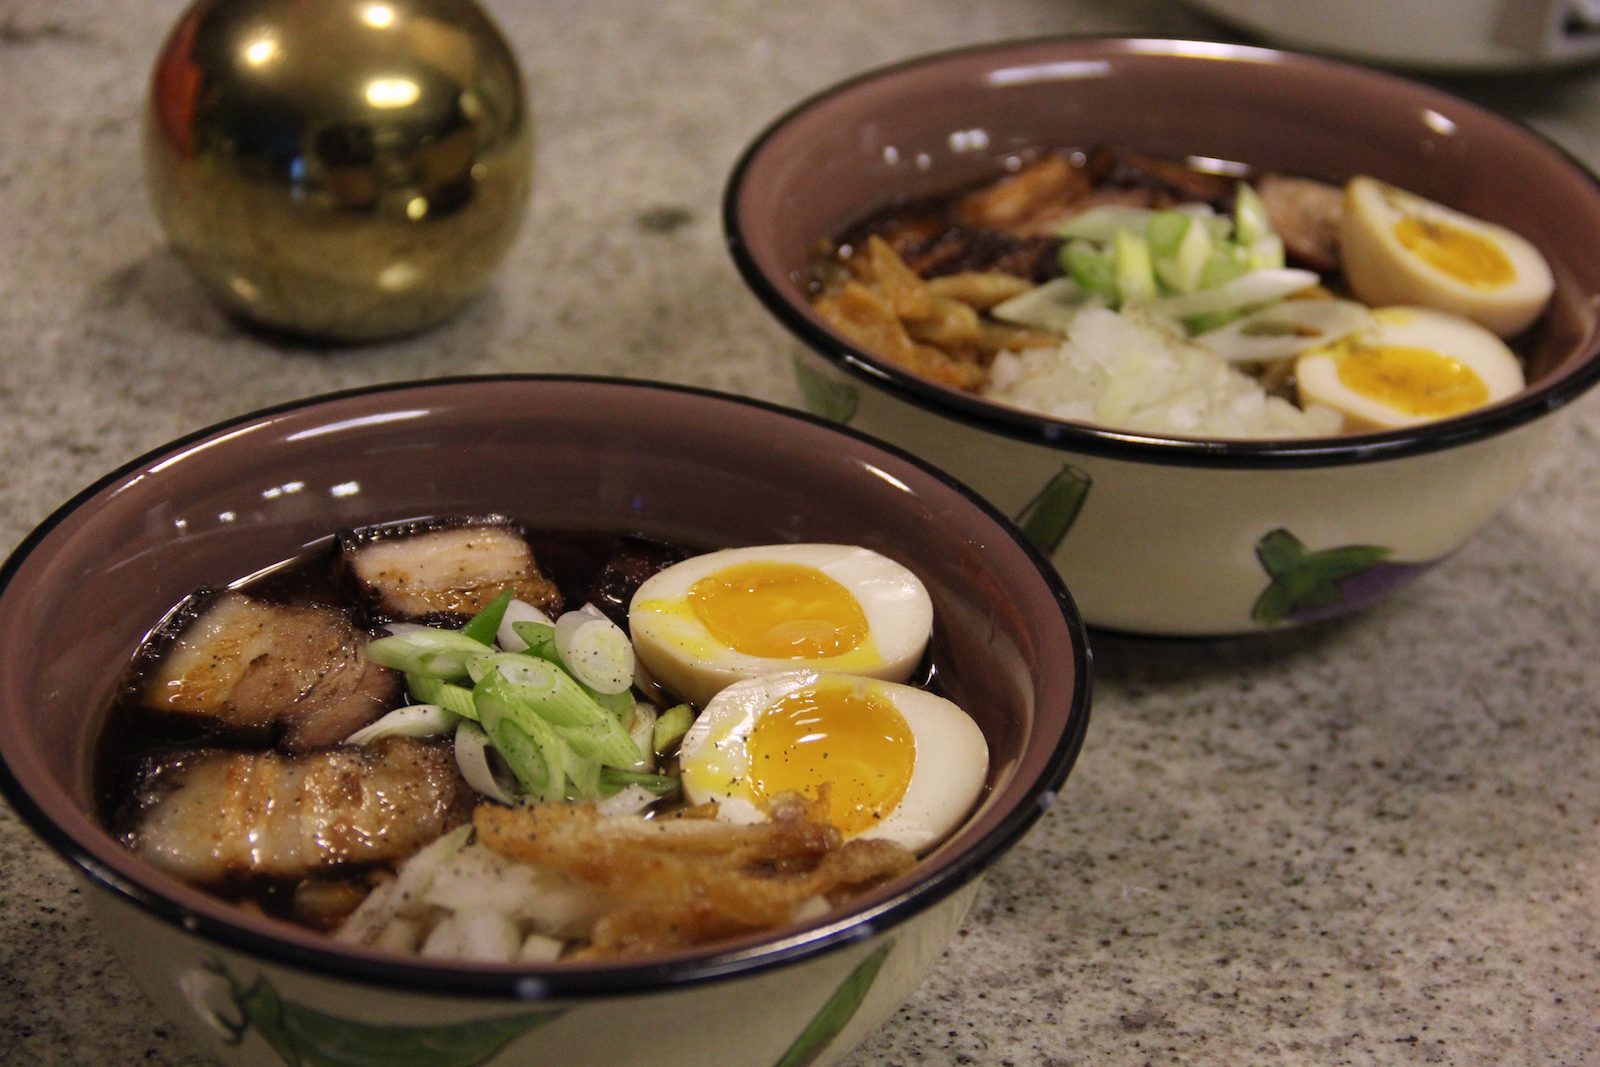 Our painstakingly made ramen! Toppings are marinated pork belly cooked for a million years, fried chicken skin + oil, ajitama, onions, green onions, and a dash of pepper! Was super delicious but would I do the whole process again? Unclear.